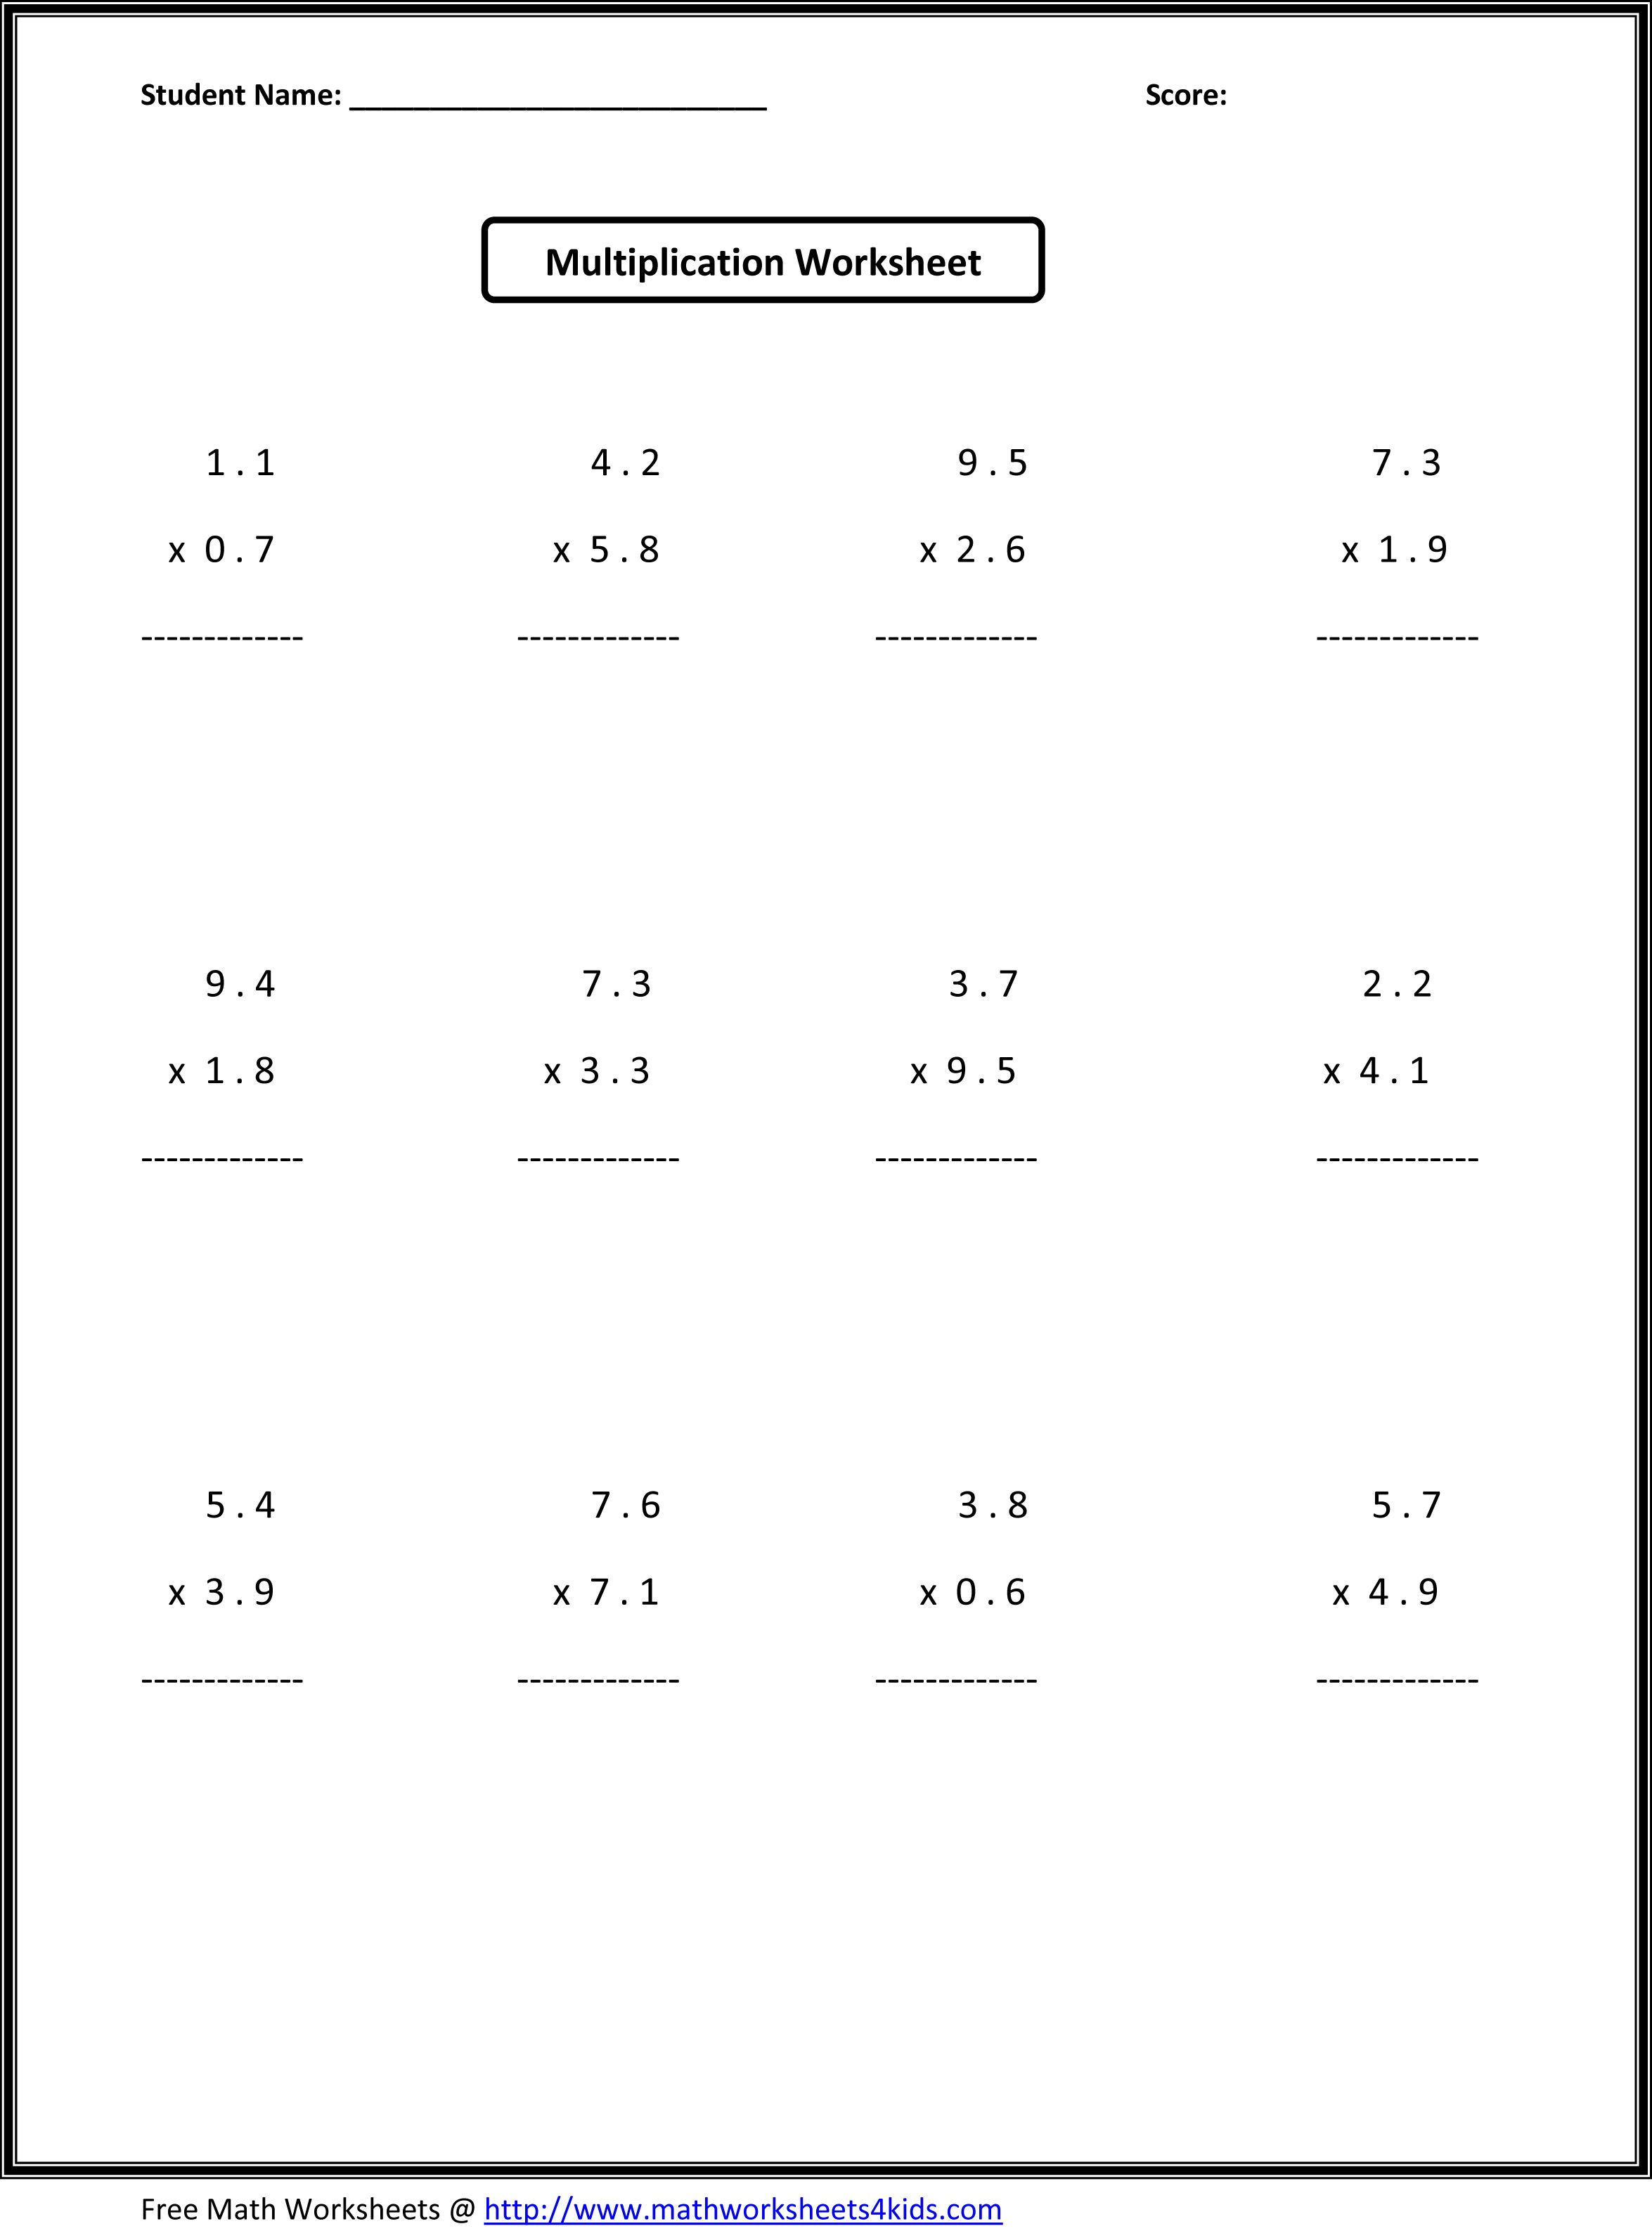 7th grade math worksheets – 7th Grade Multiplication Worksheets